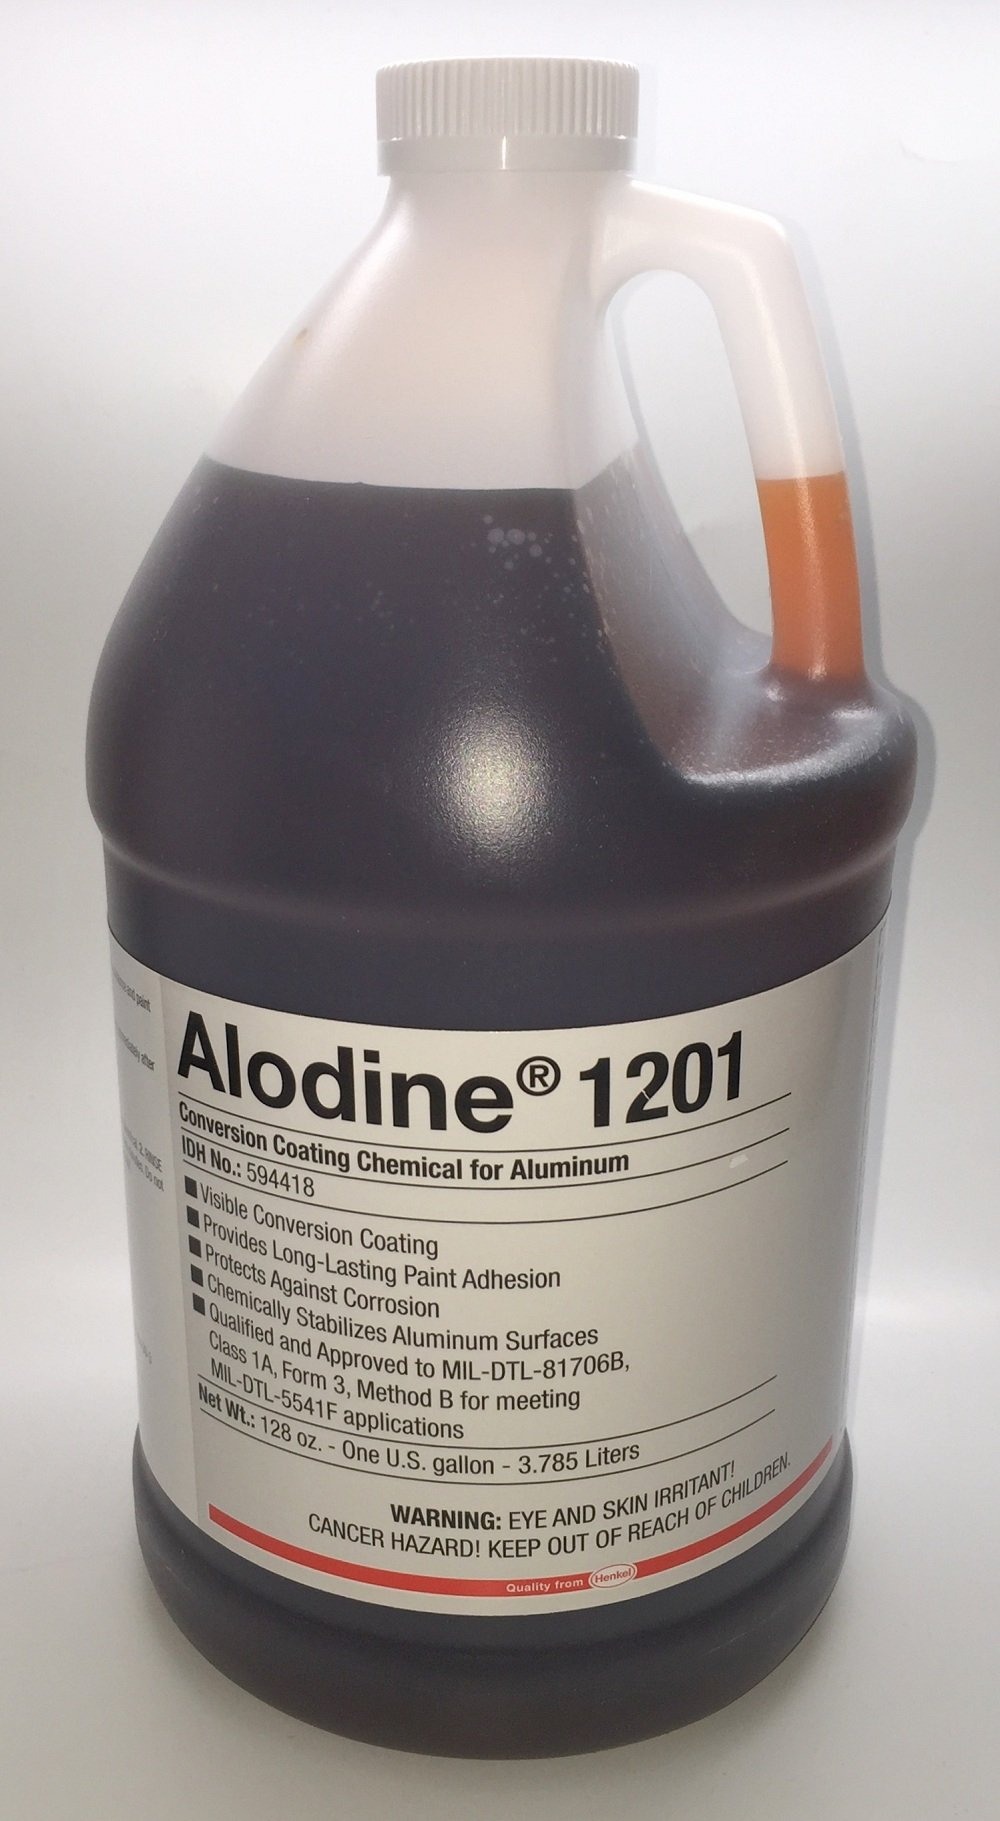 Henkel - Alodine 1201 Light Metals Conversion Coating/Bonderite M-CR, Gallon